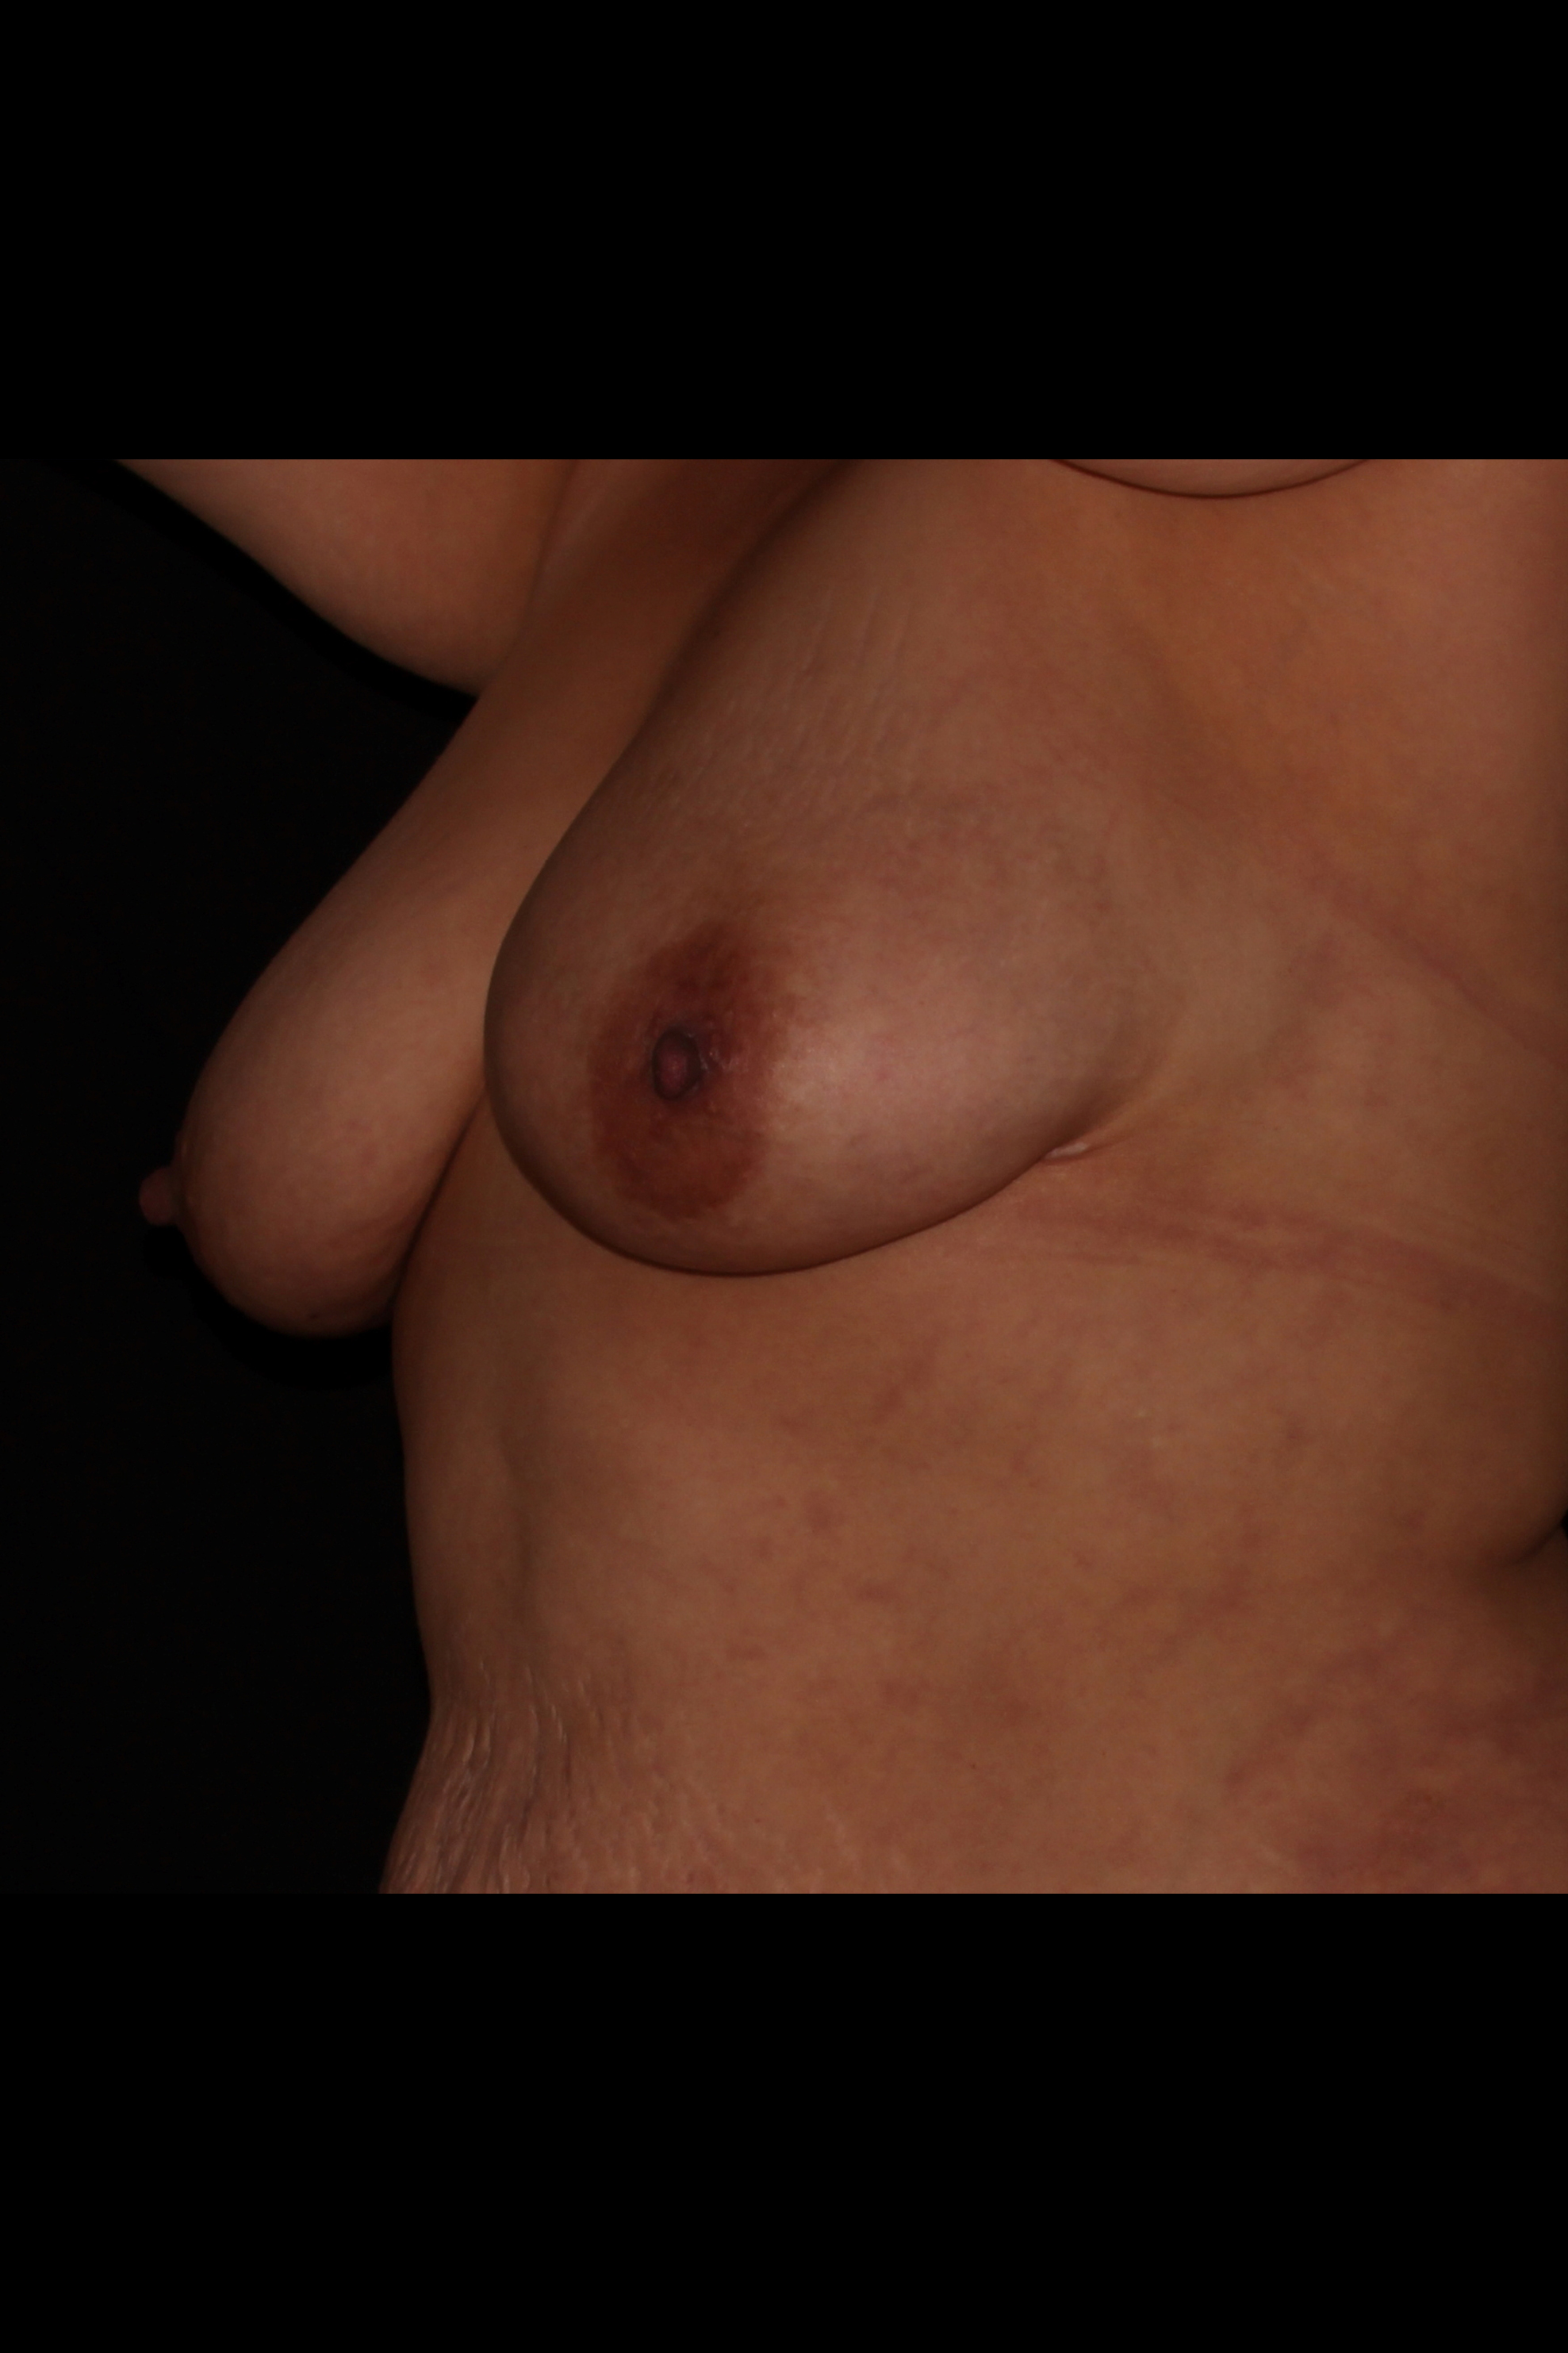 After Fat Transfer to Breast - Fat transfer to the breast